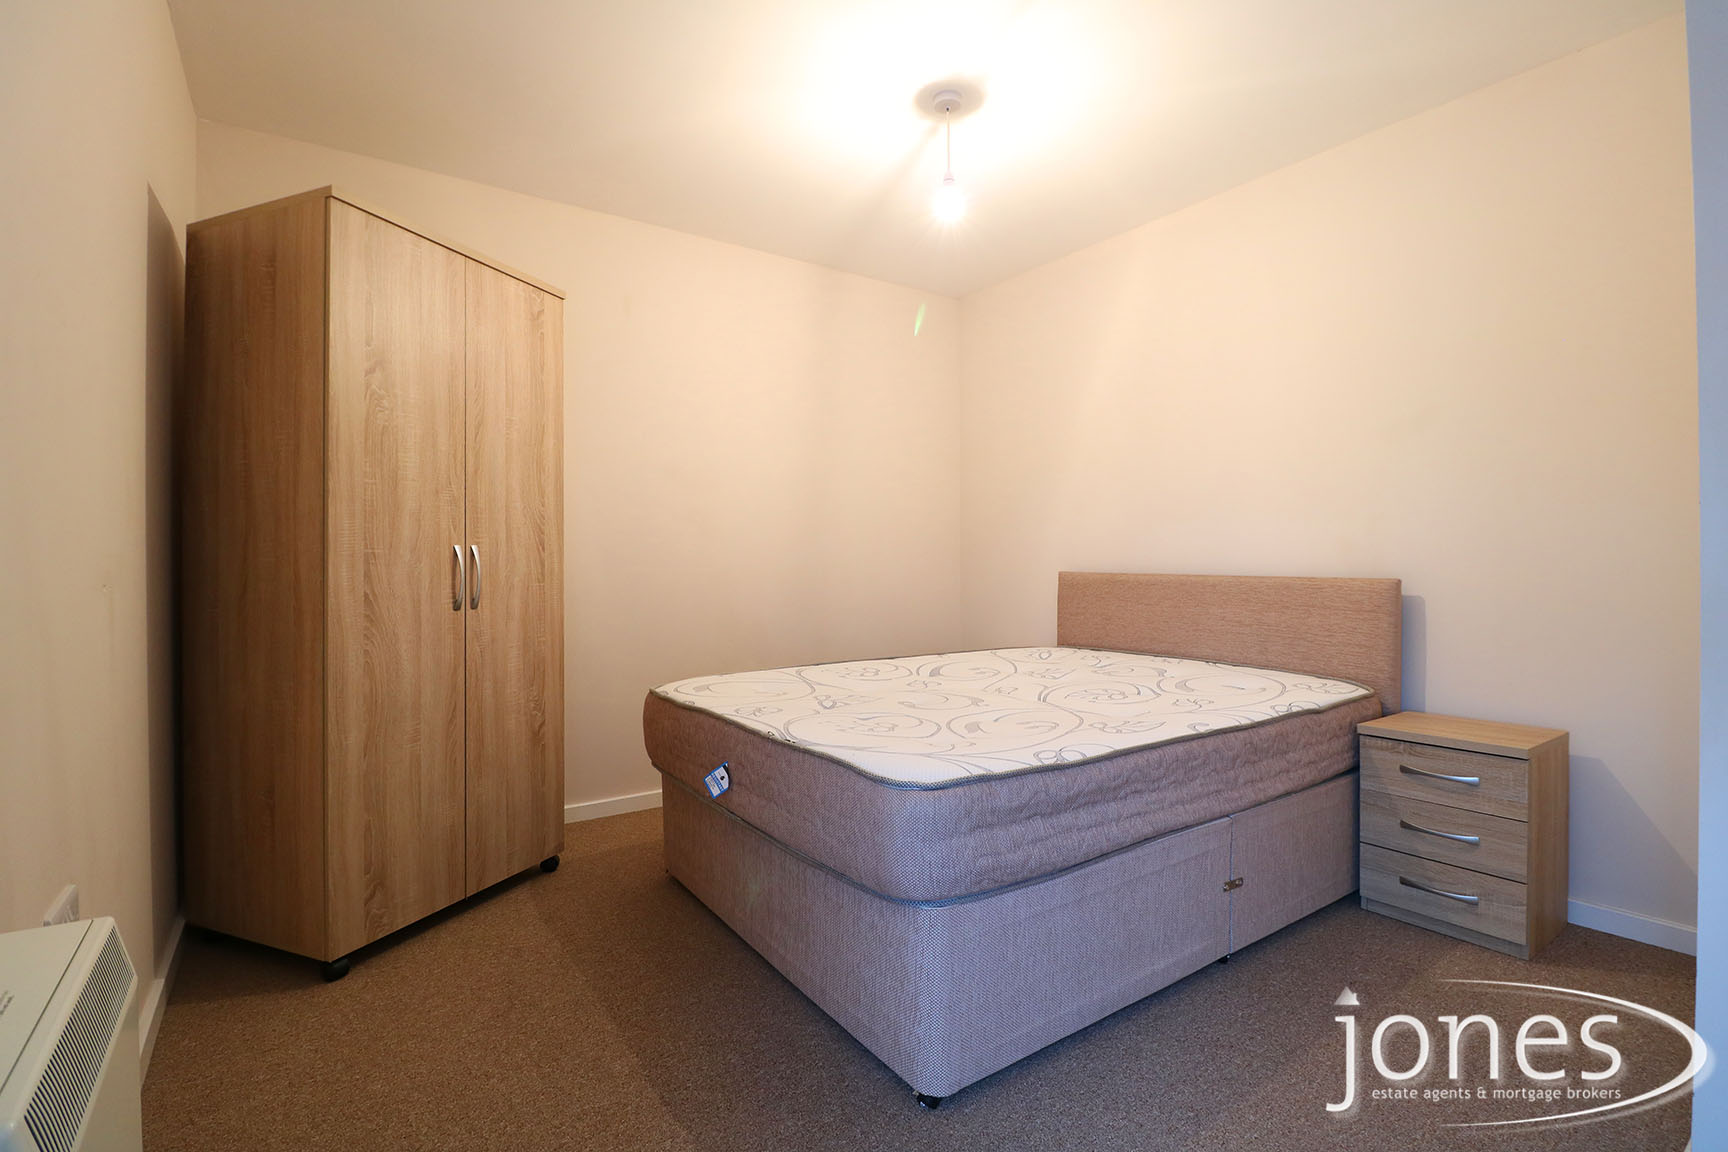 Home for Sale Let - Photo 05 Newport House, Thornaby on Tees, TS17 6SH